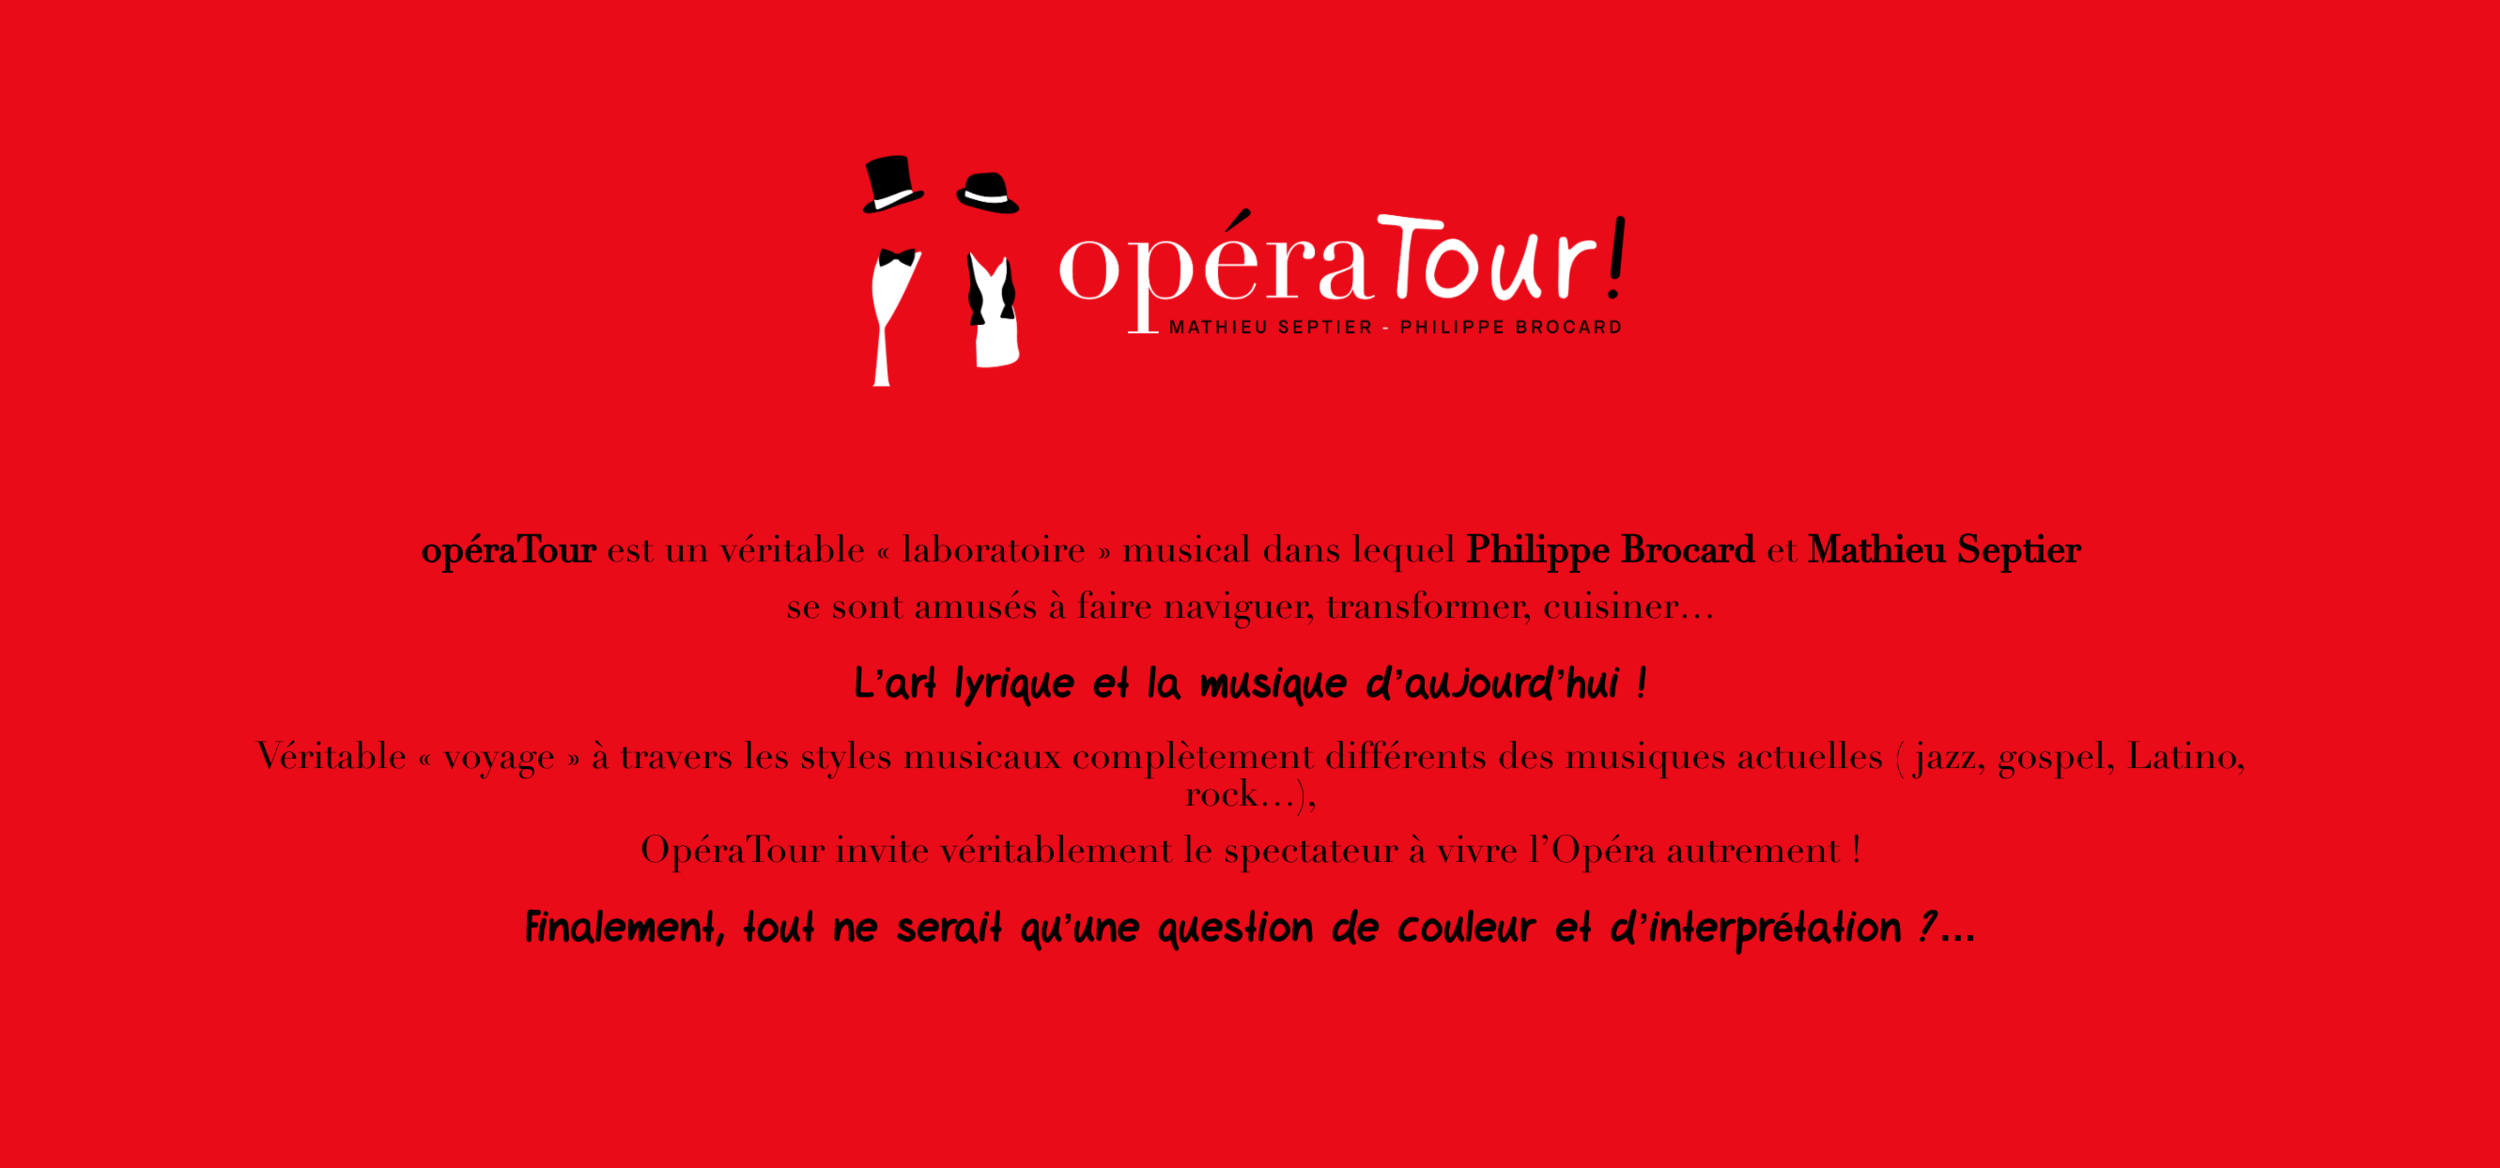 quentin_paquignon-branding-visual_identity-opératour_08.png